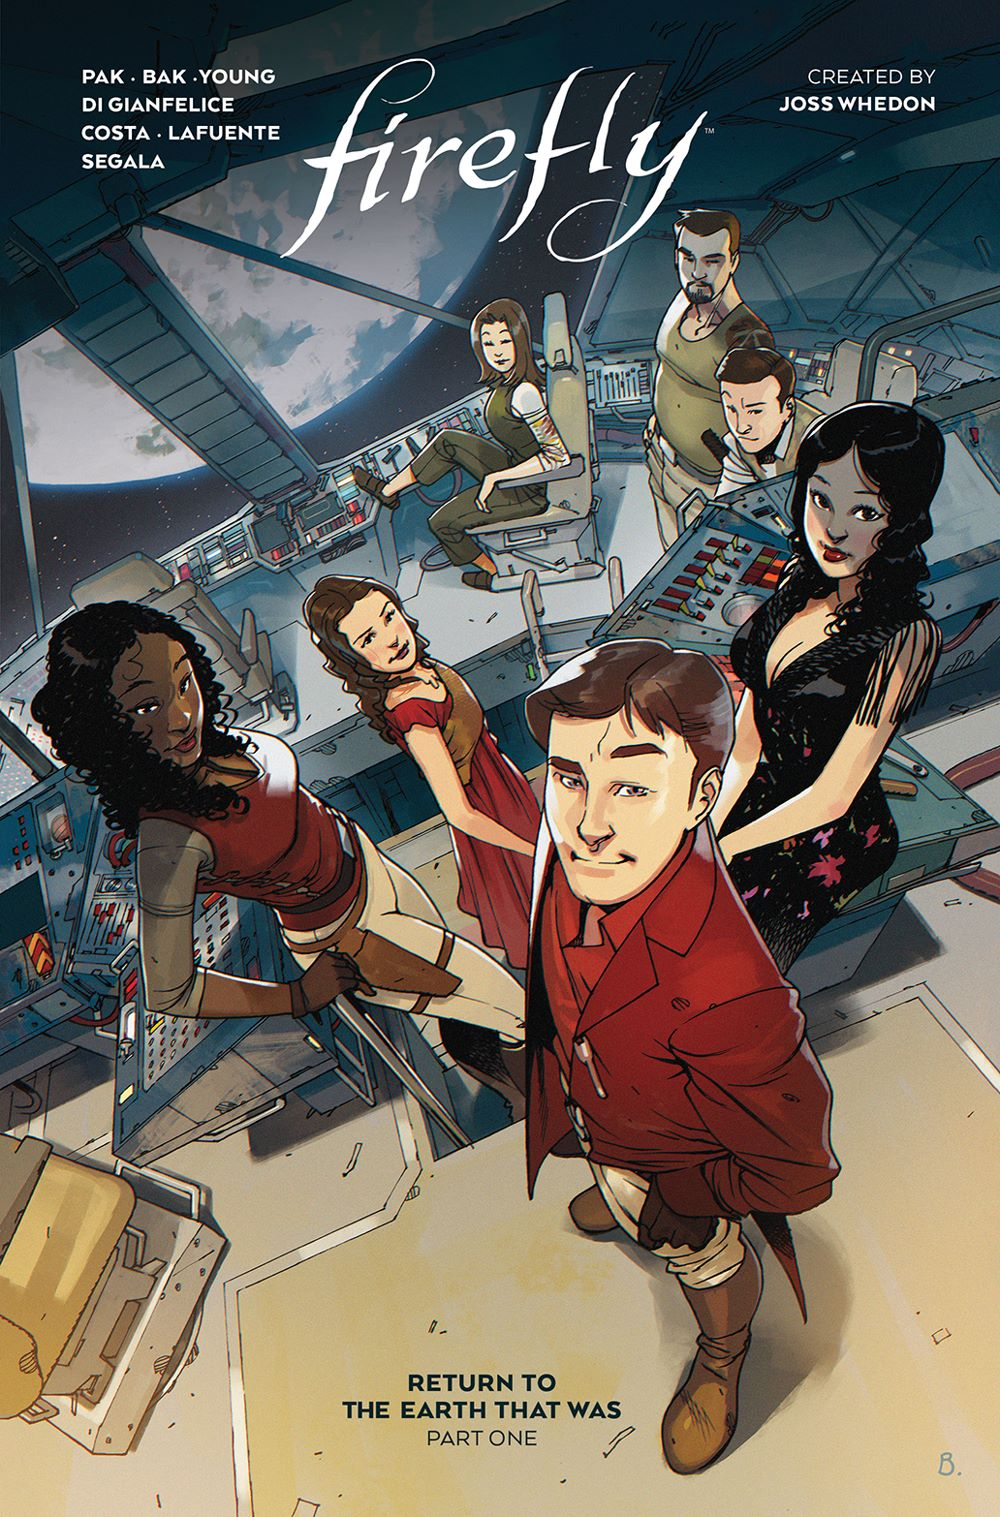 Firefly_ReturnToEarth_v1_HC_Cover ComicList Previews: FIREFLY RETURN TO THE EARTH THAT WAS VOLUME 1 HC